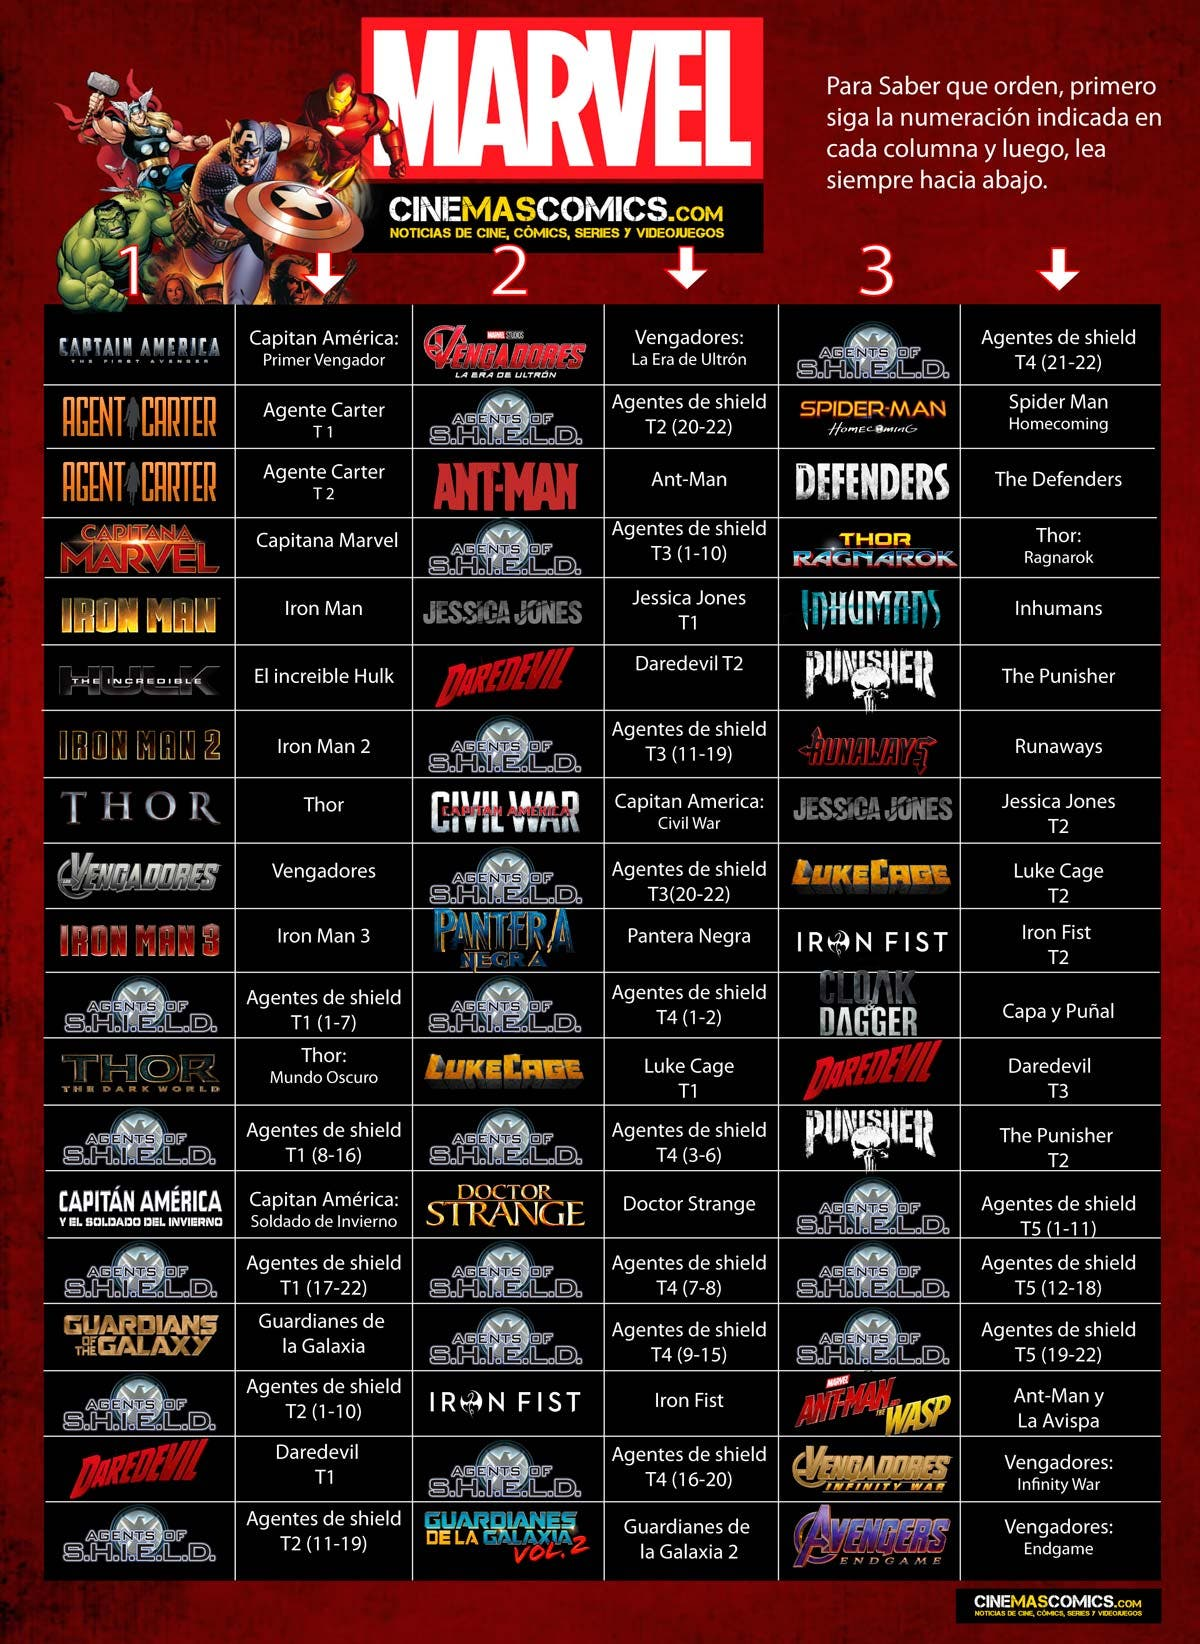 Correct order in which to watch all marvel movies and series